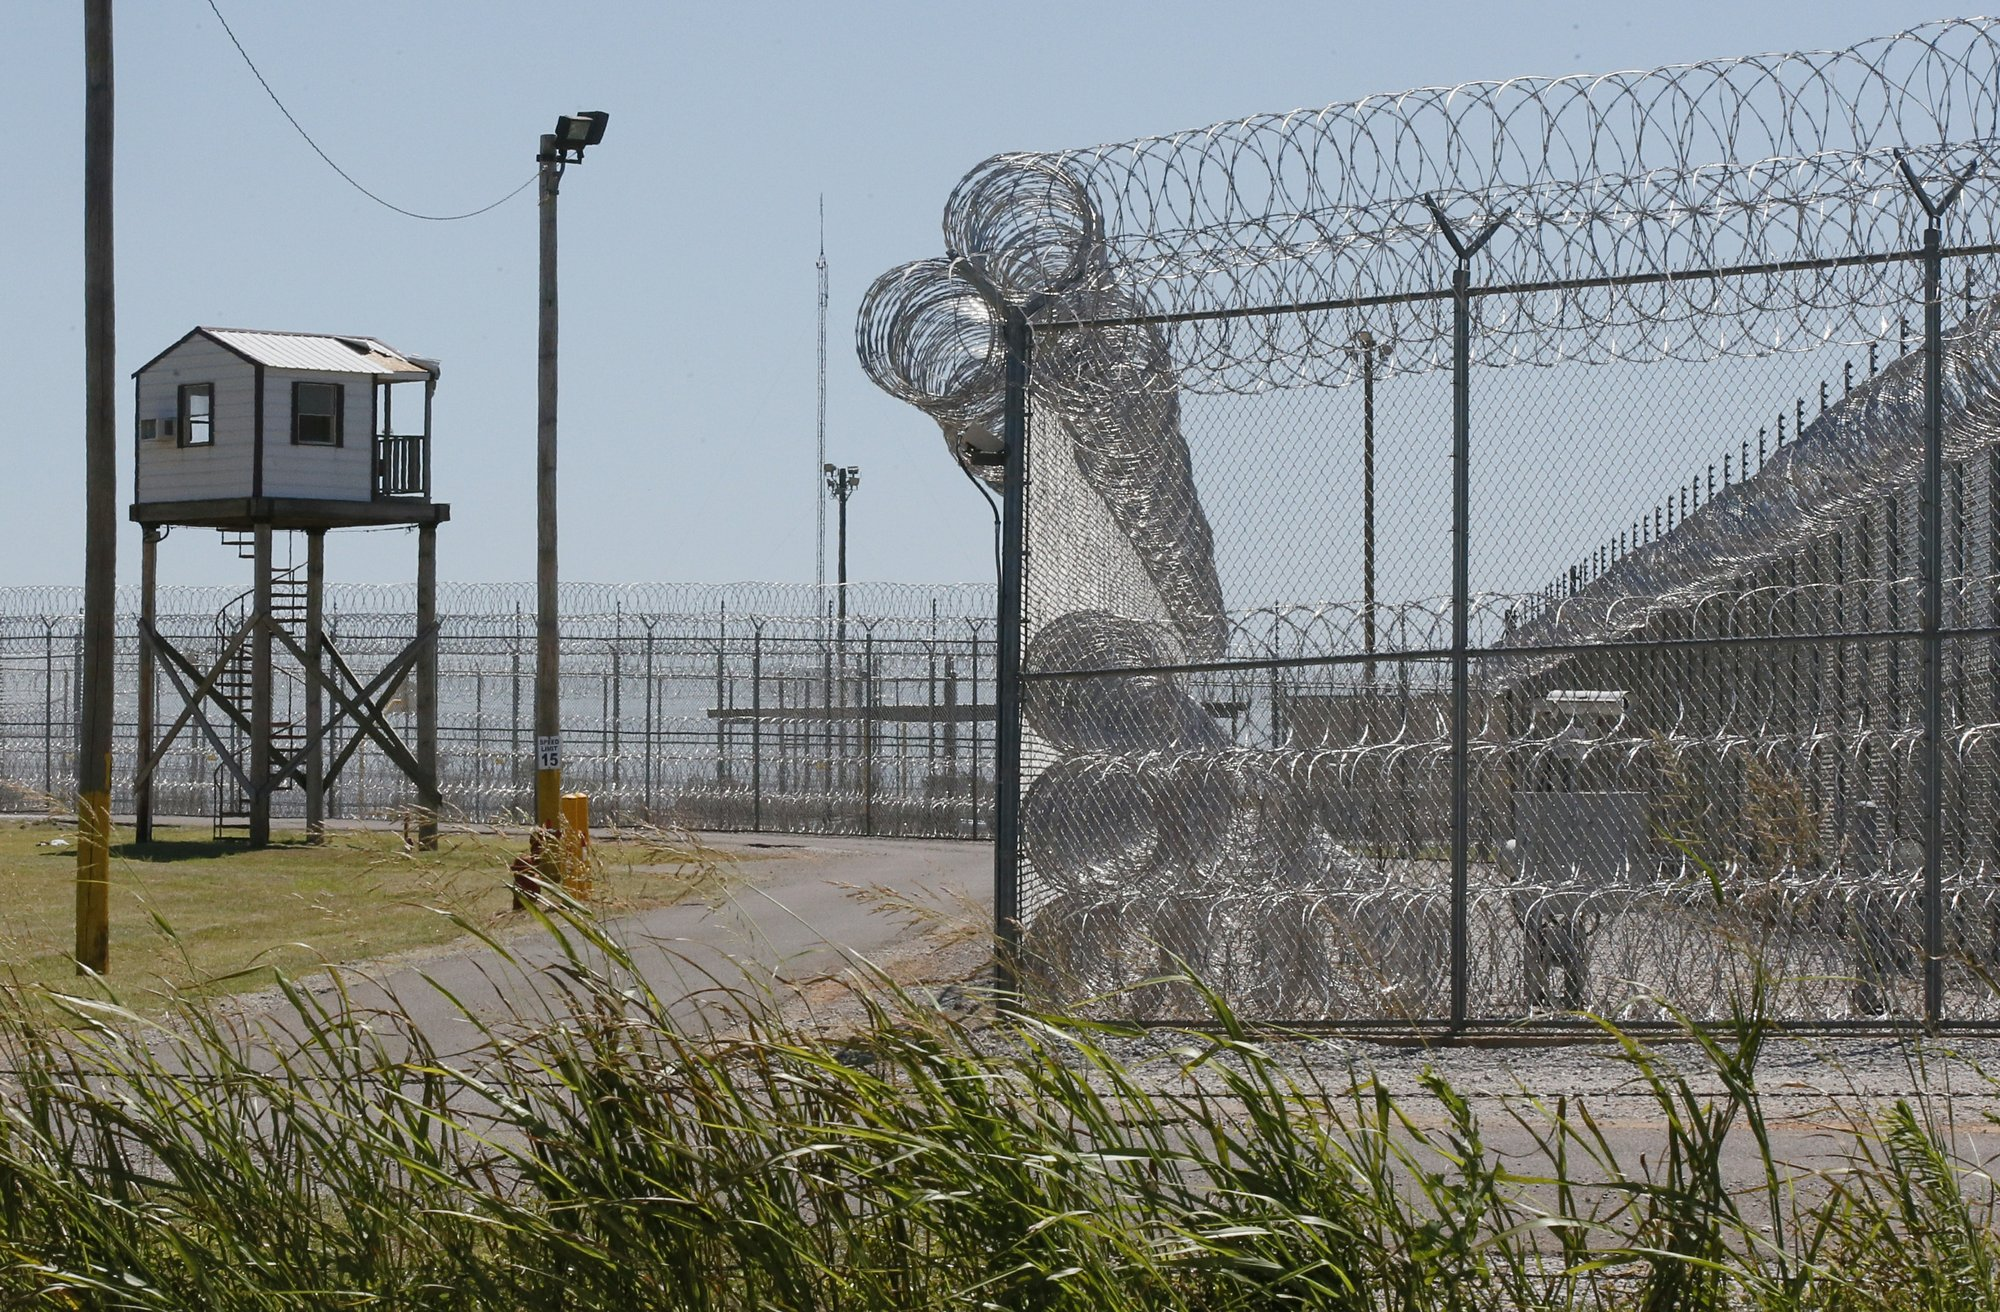 Weapons, phones, drugs found after Oklahoma prison fights